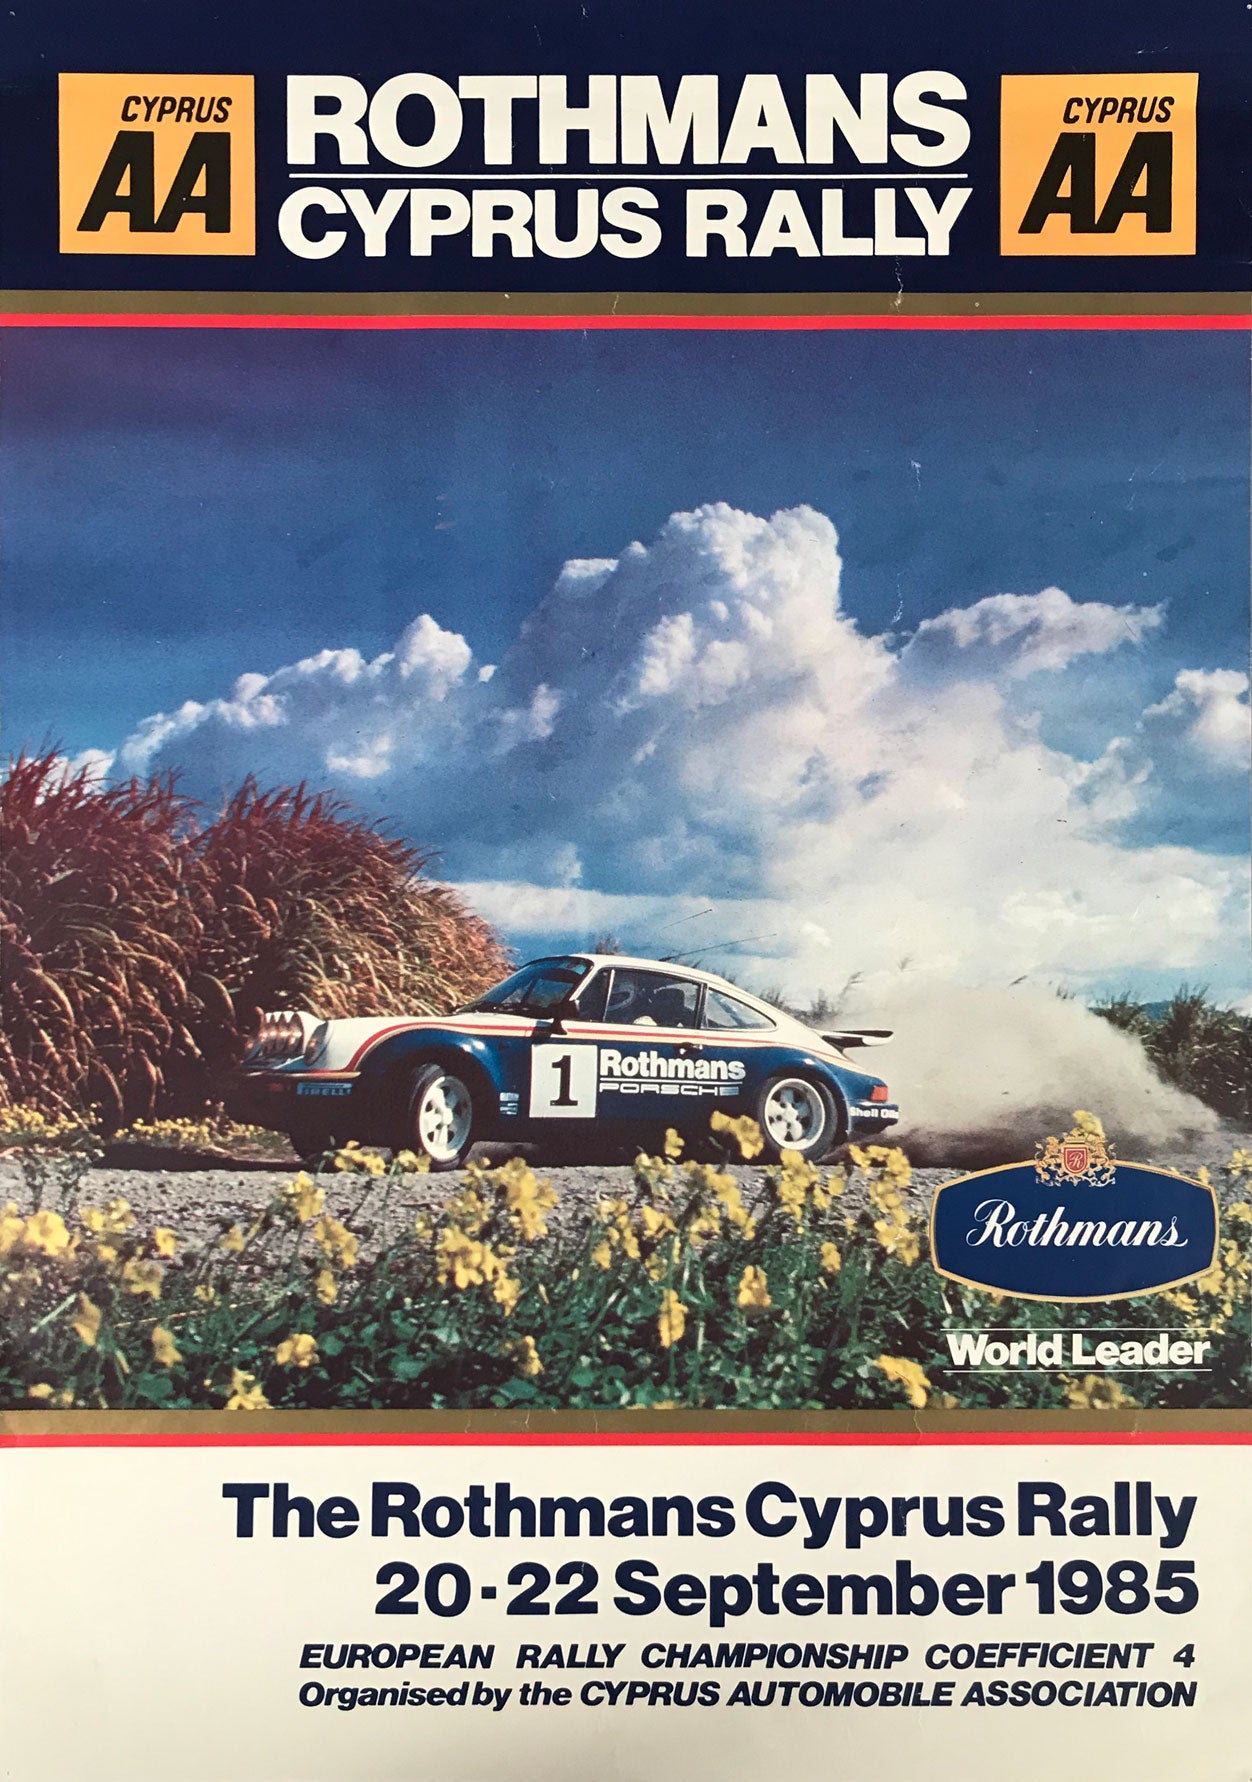 The Rothmans Cyprus Rally 1985 official poster, Porsche 911